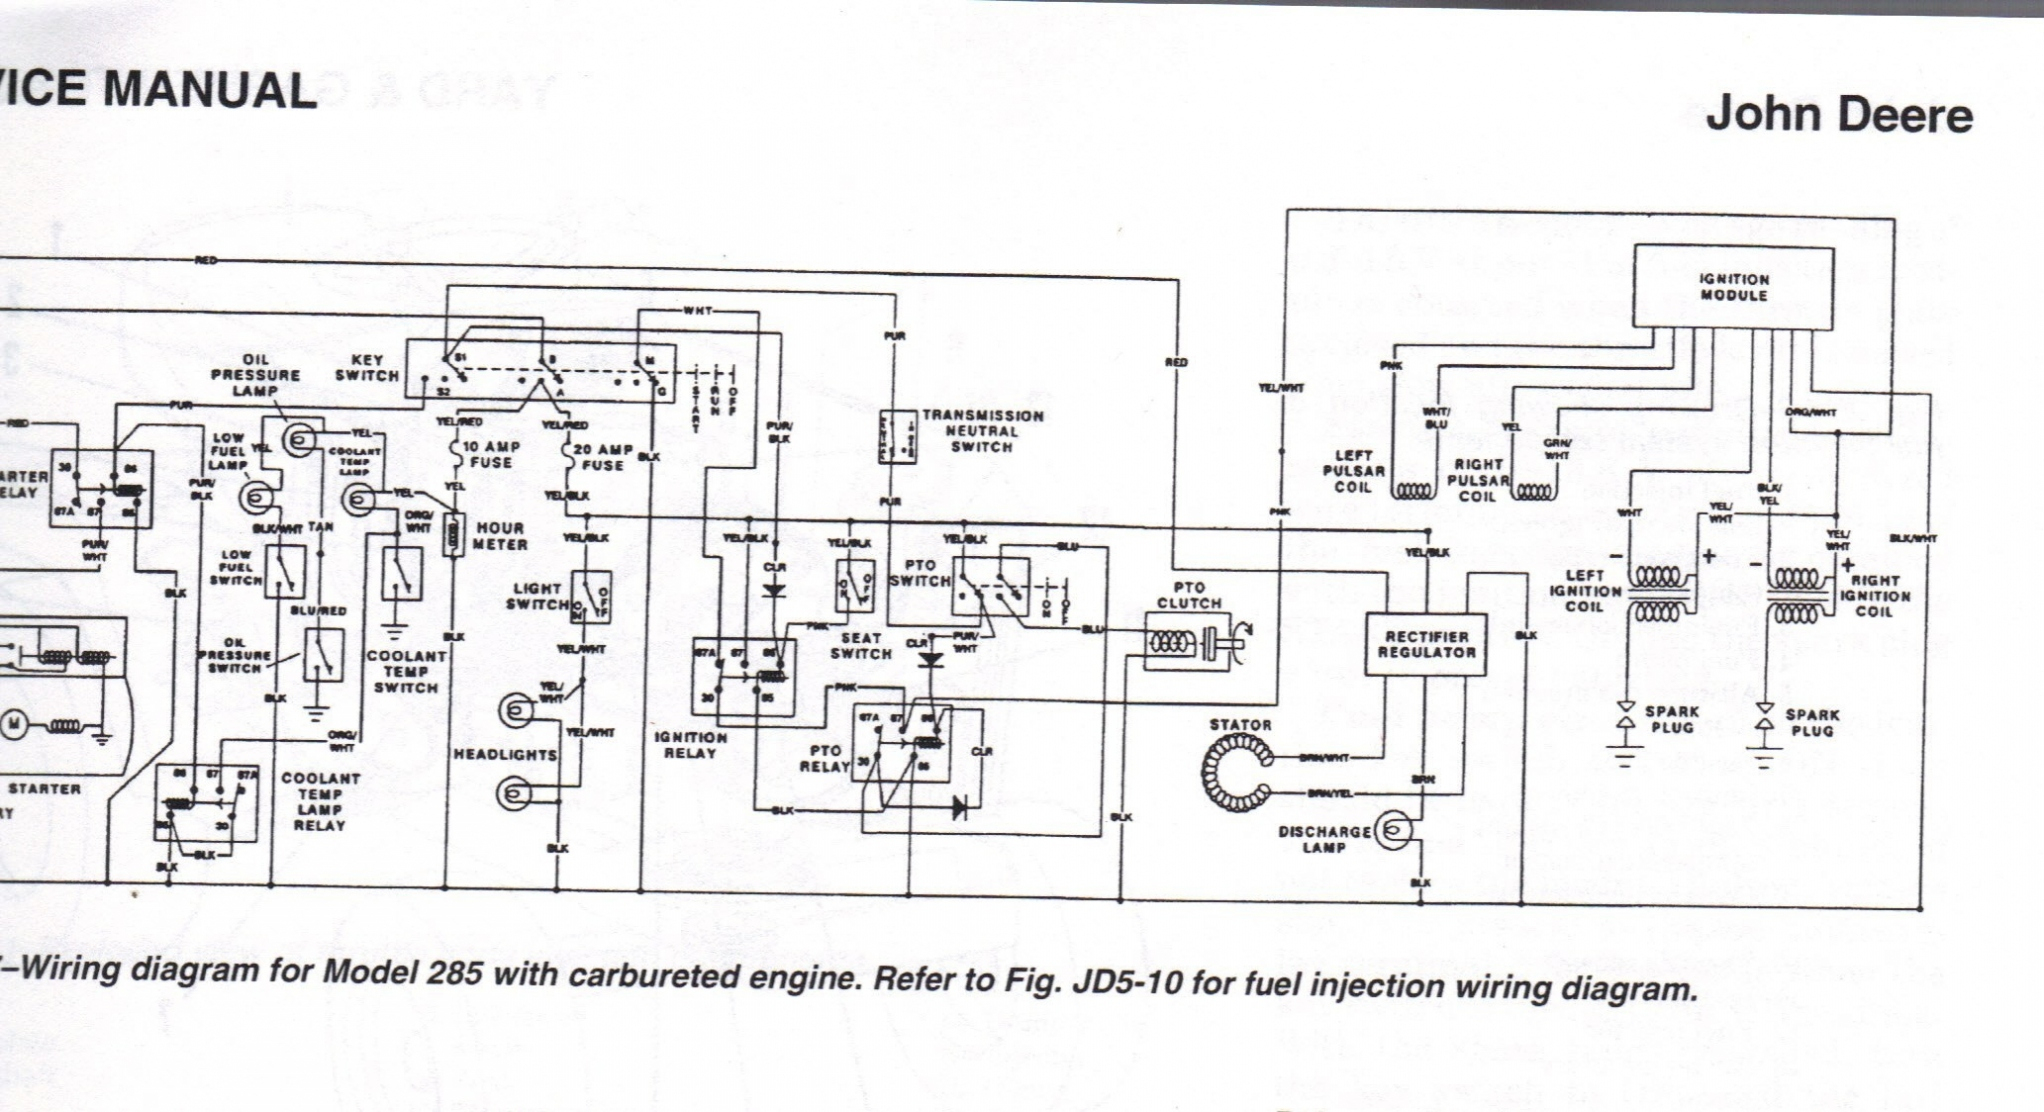 John Deere Gator Electrical Schematic | Wiring Library - John Deere Ignition Switch Wiring Diagram